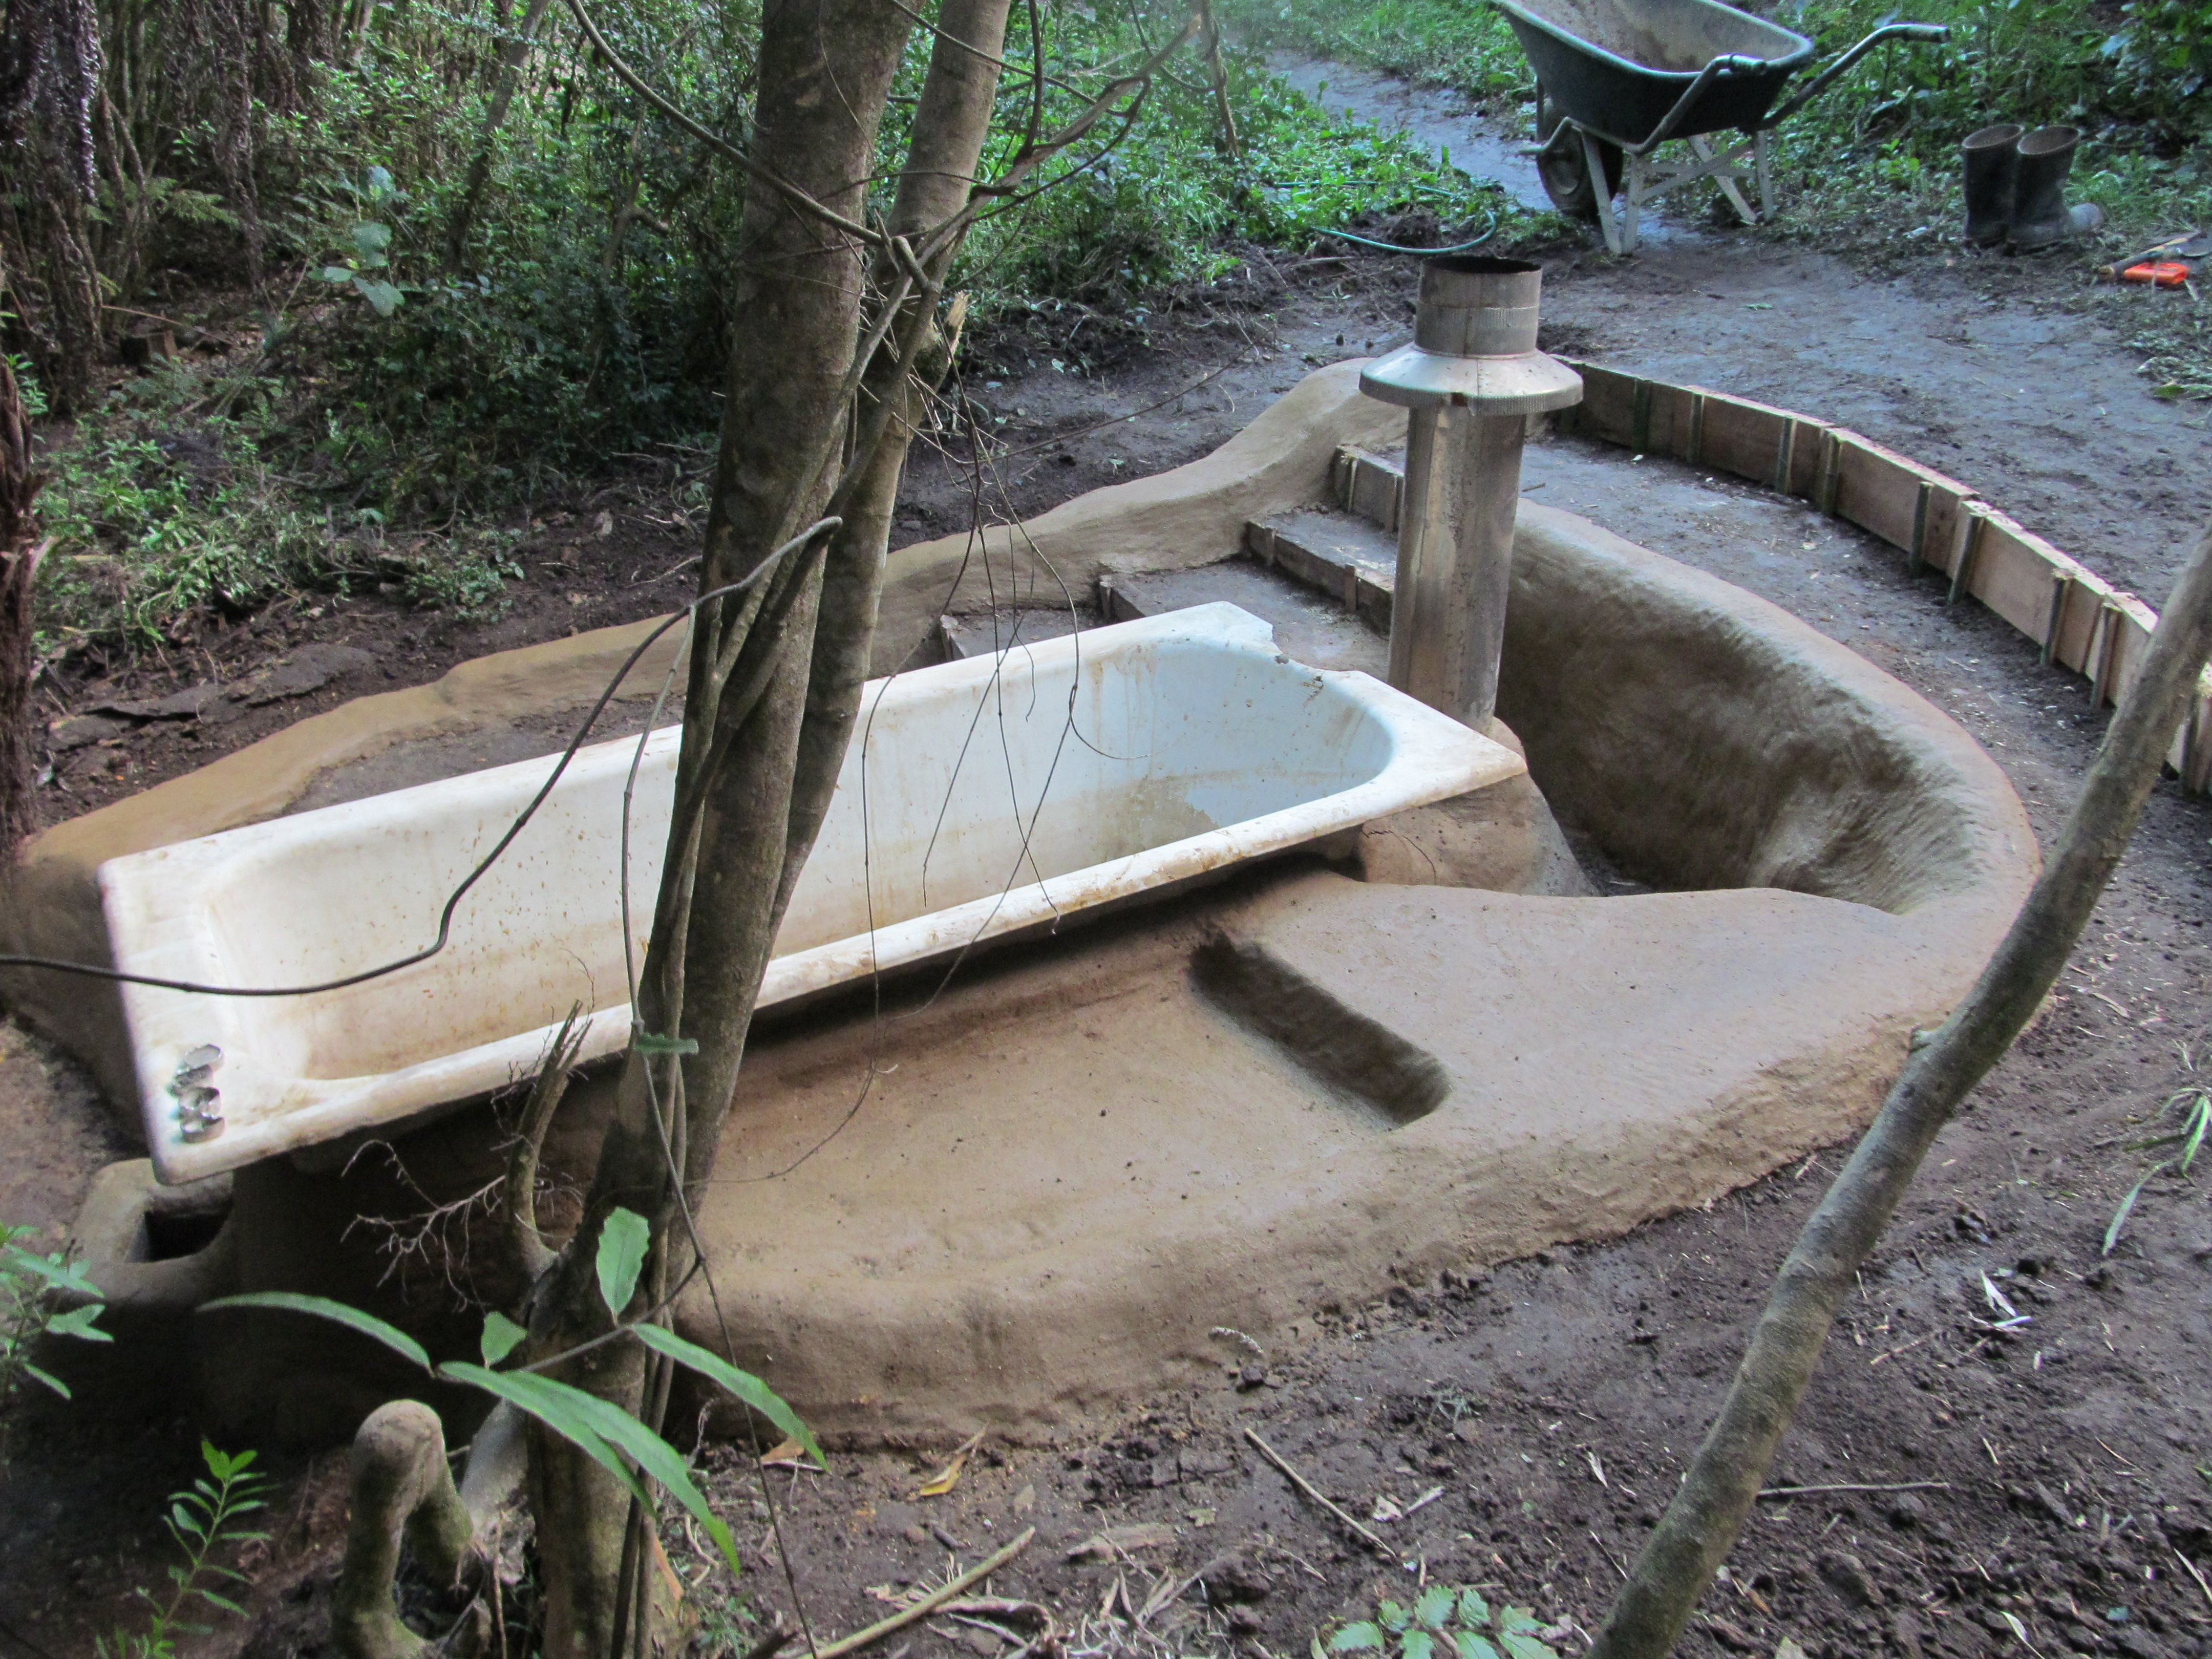 The New Rocket Stove Fire Bathtub Gets A Cobbing